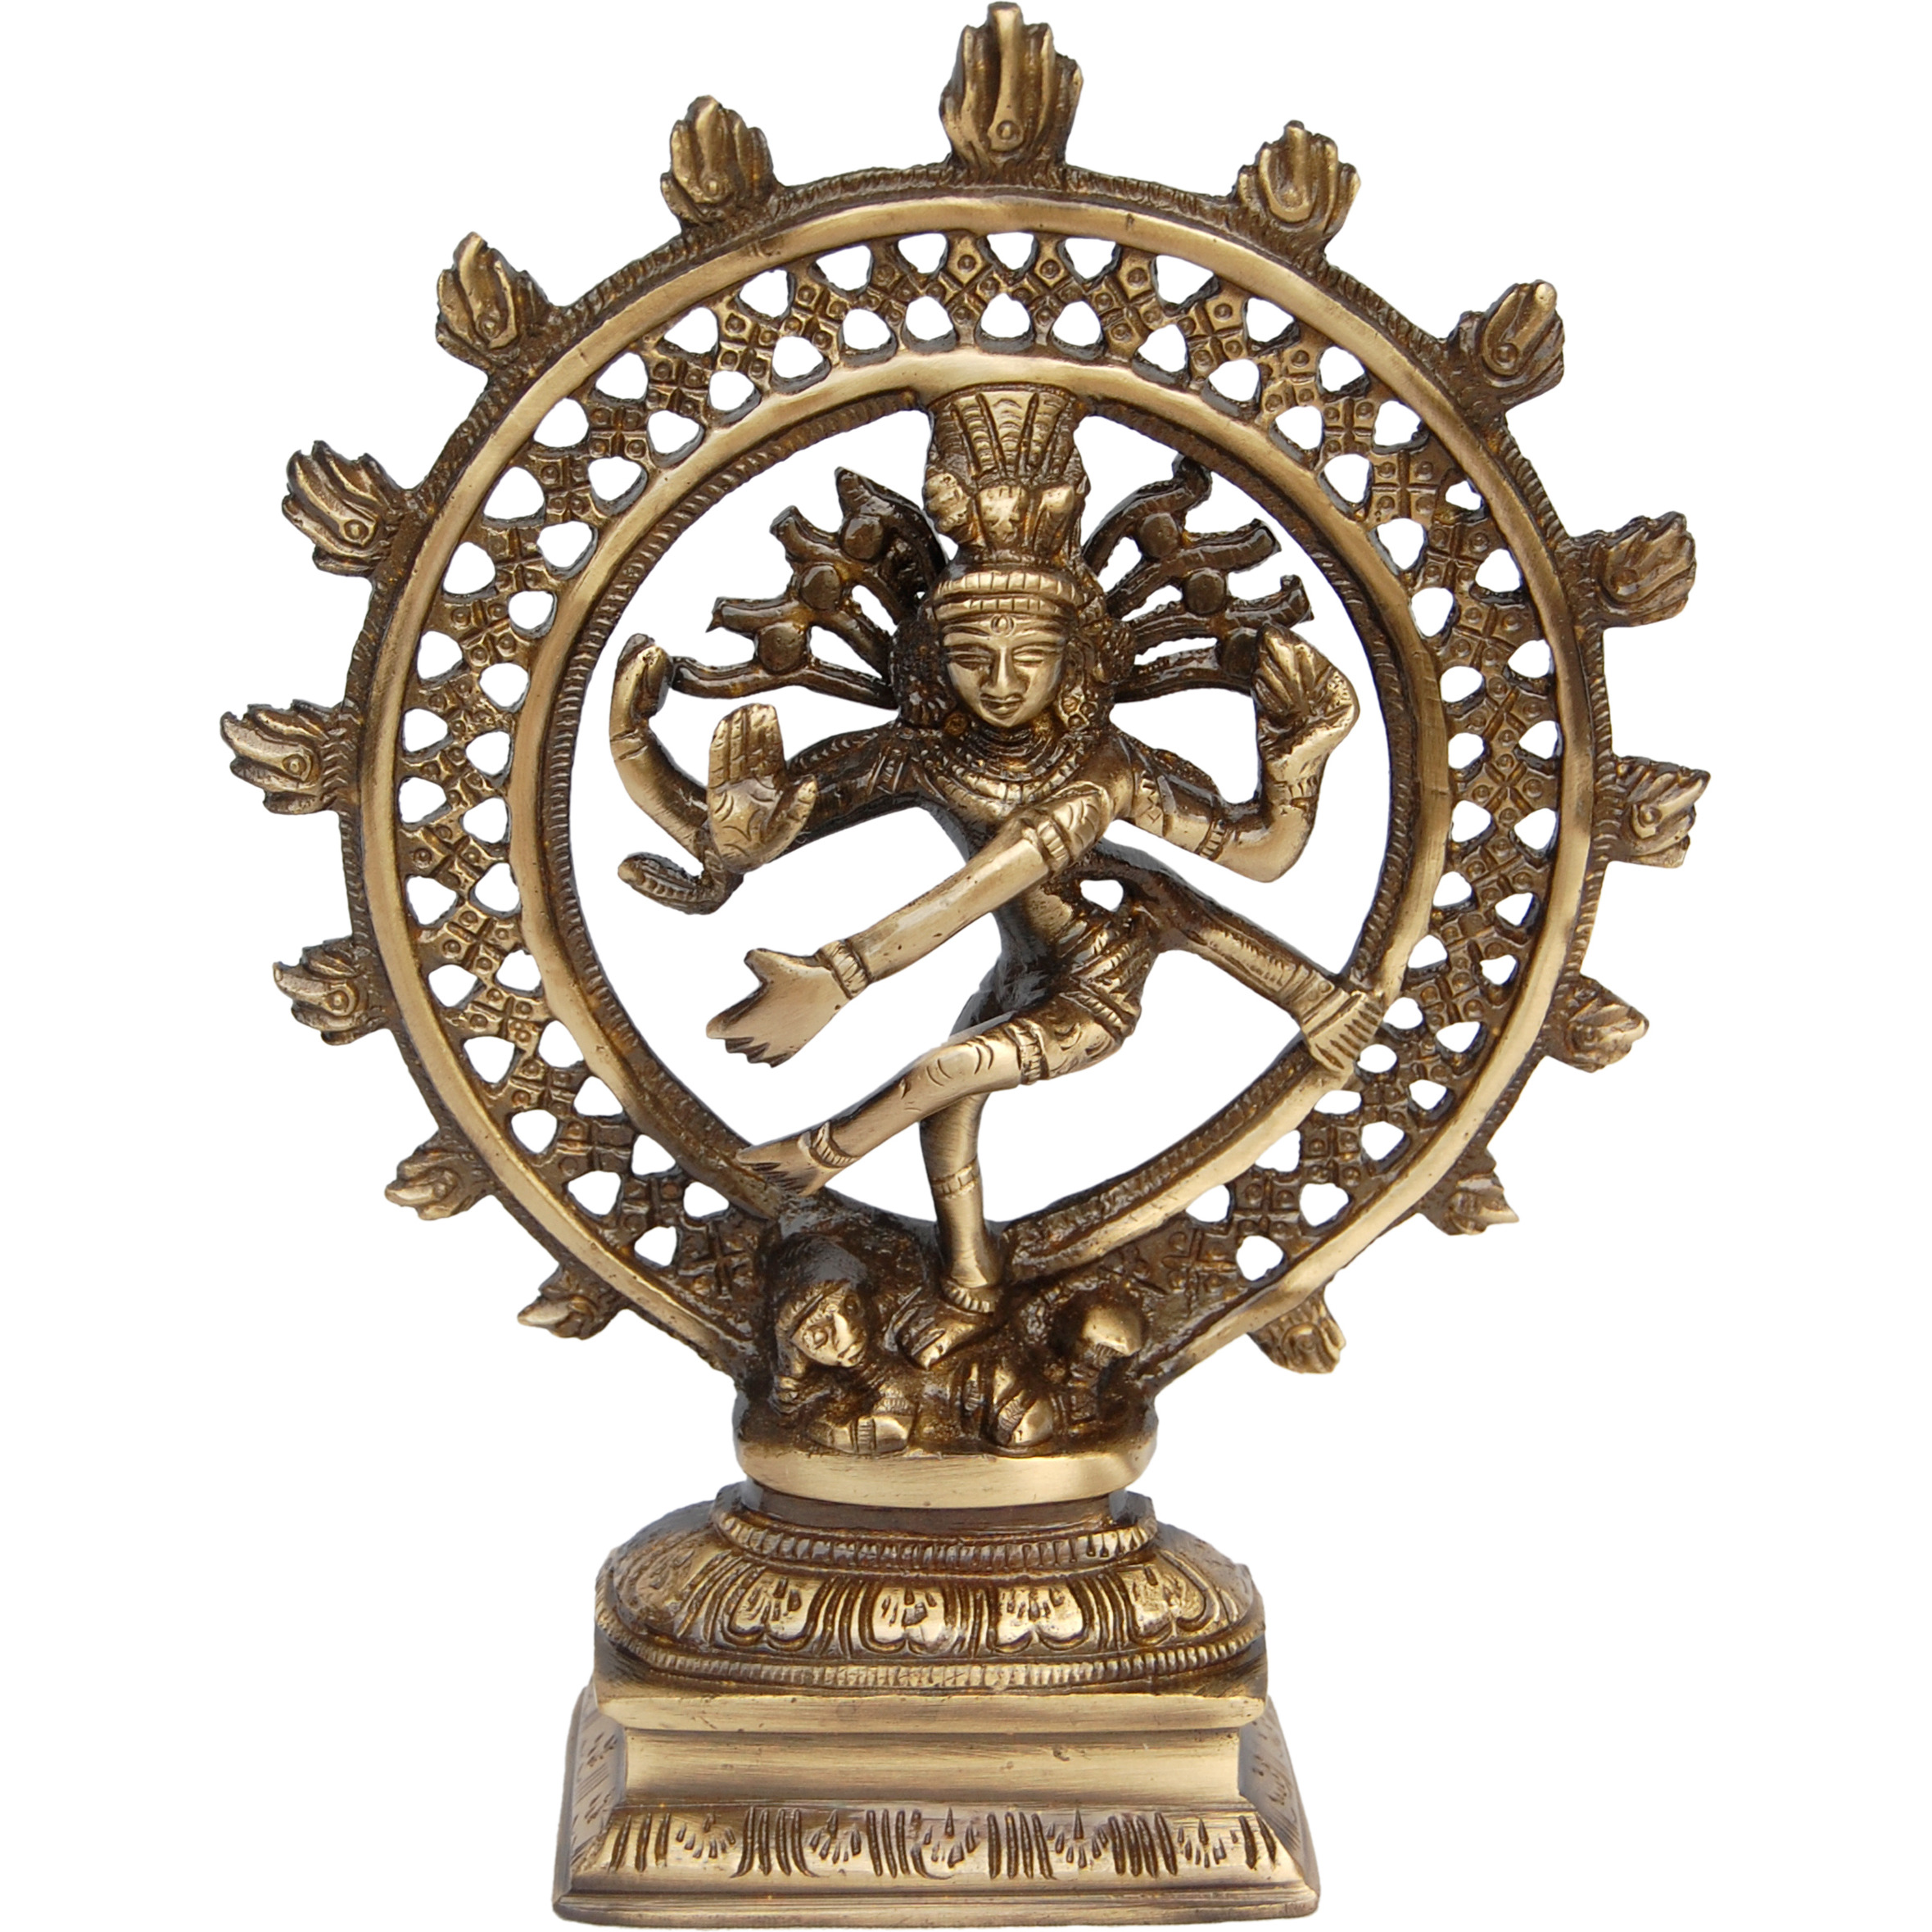 Aakrati Hindu God Shiva (Natraj) Statue of Brass Brown